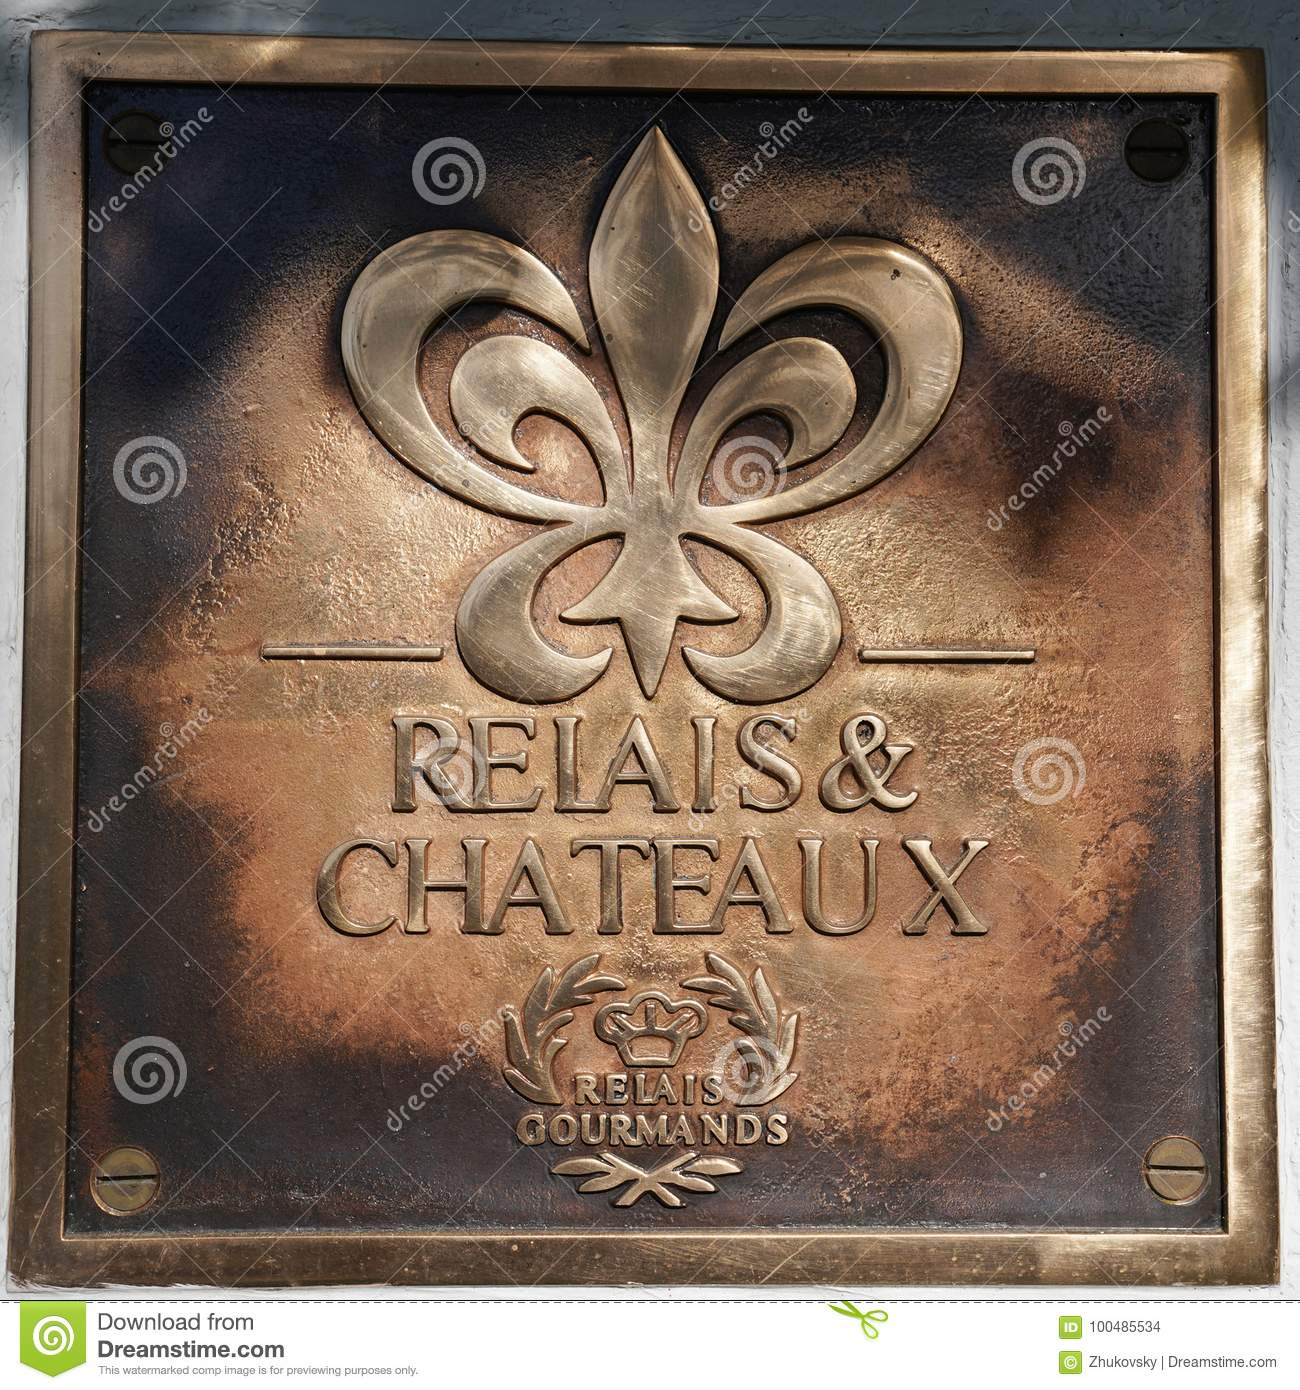 Relais Et Chateaux Relais Chateaux Relais Gourmands Sign In The Elderberry House